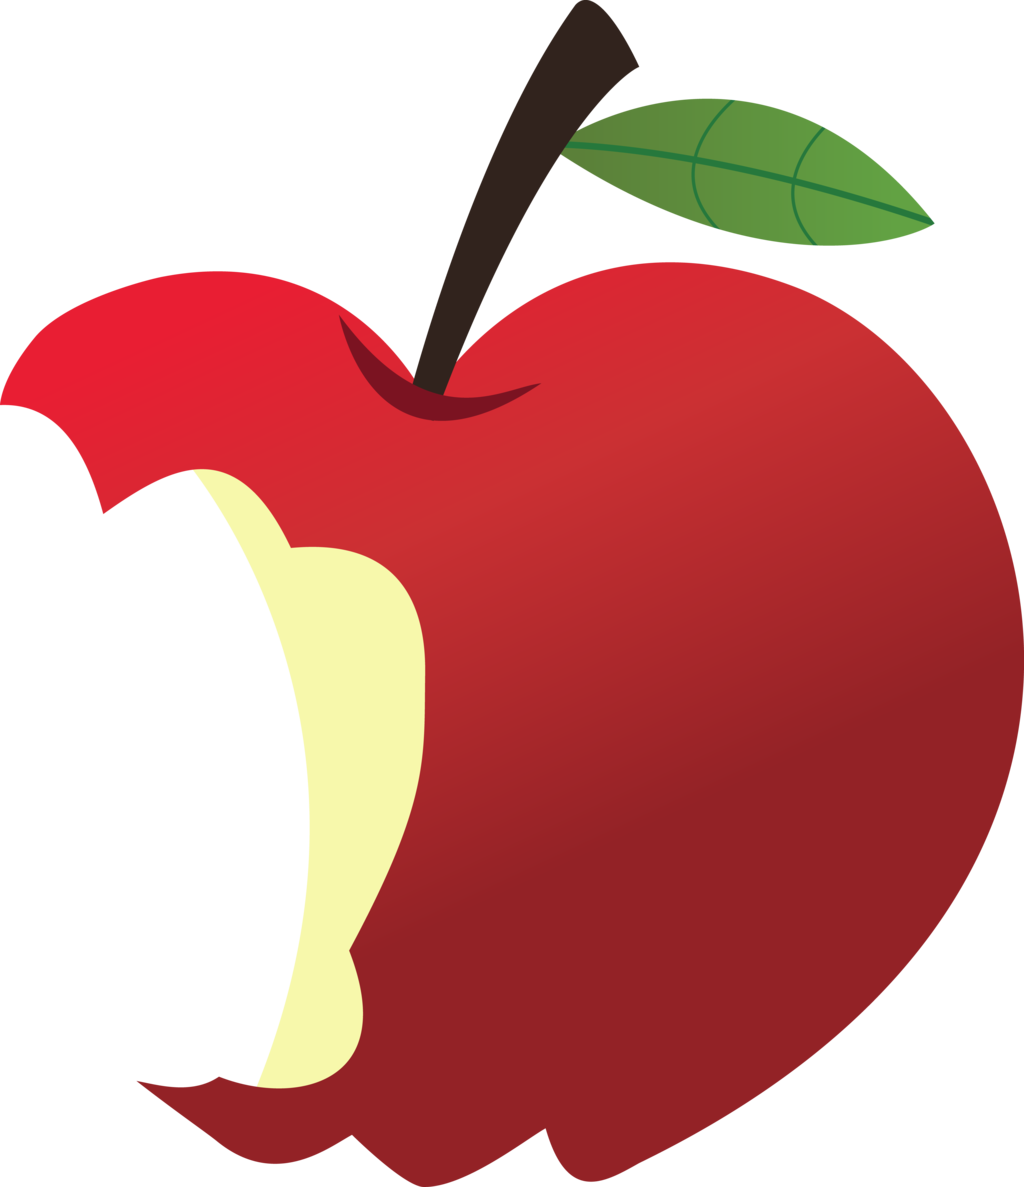 Apple in half clipart graphic free download Bitten Apple Clipart - Imagens de clip art gratuitas | PINTURA EM ... graphic free download